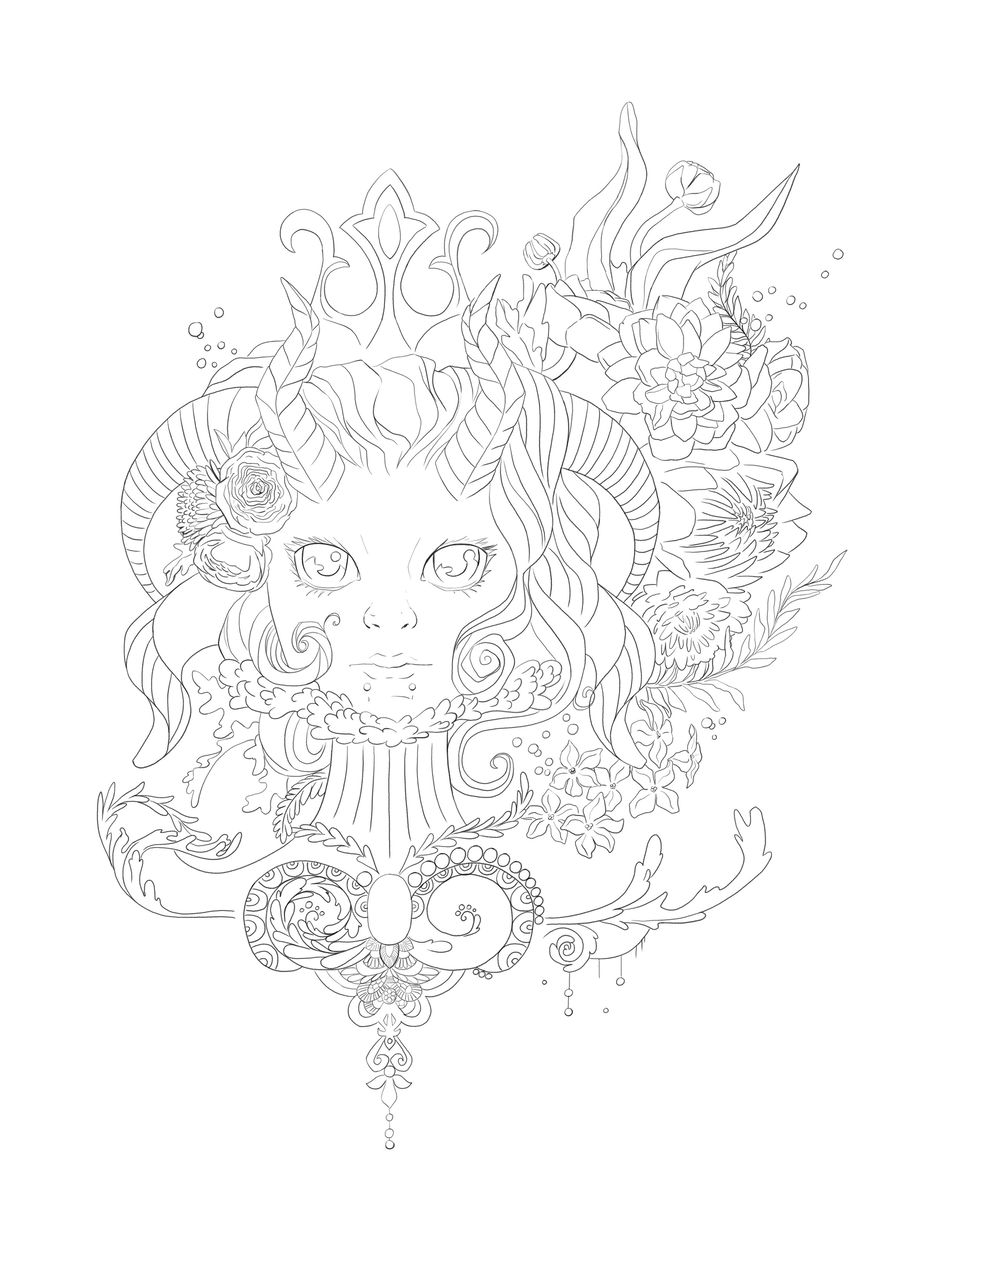 Doodle to Tattoo - image 2 - student project